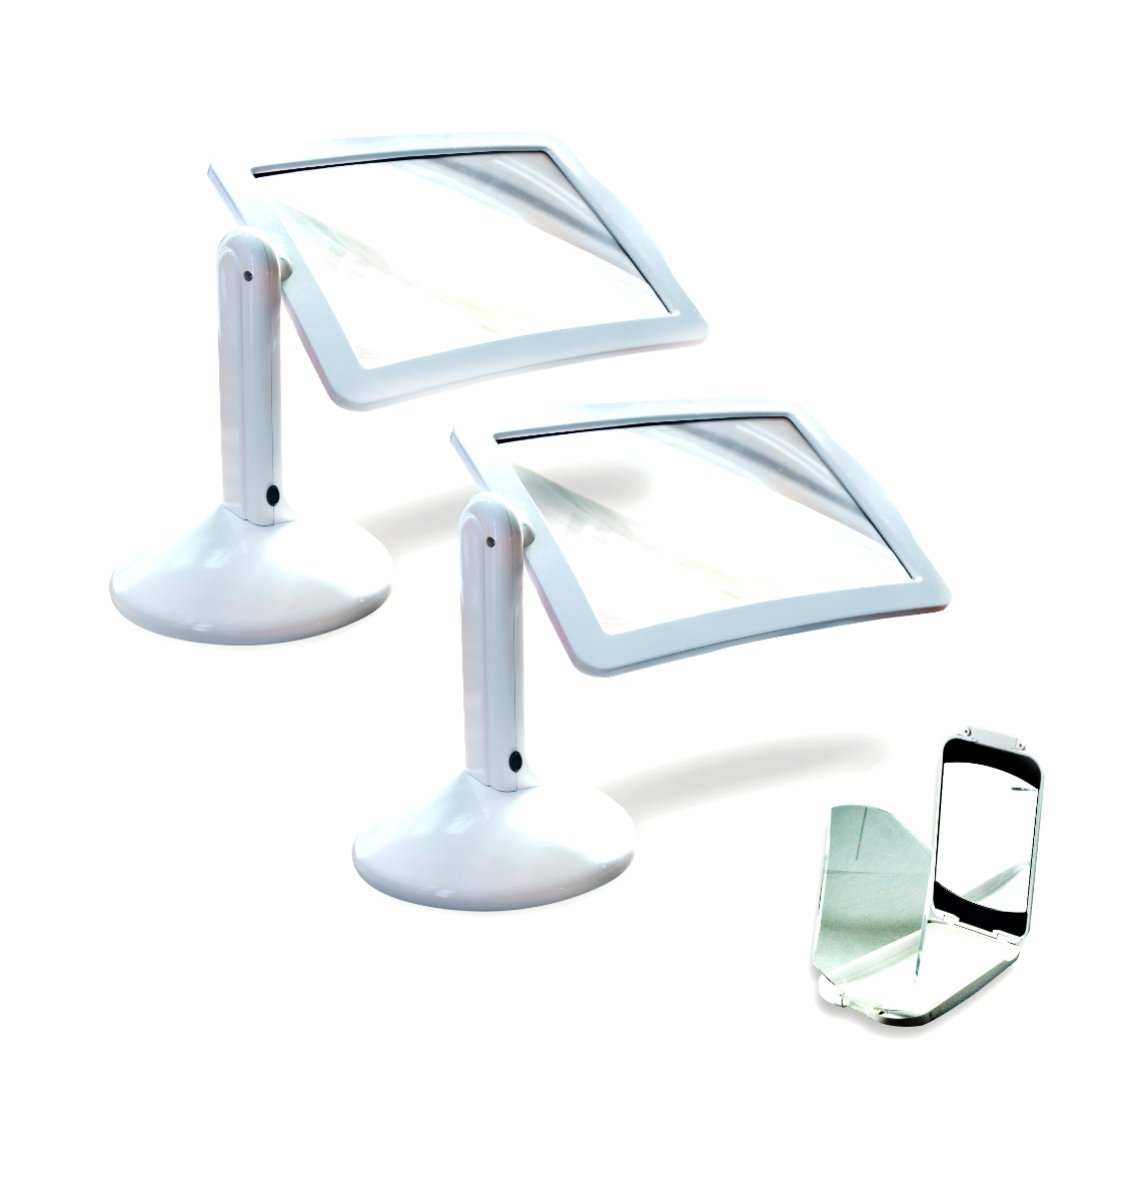 Brighter Viewer - LED Magnifier - Screen Magnifier in White - Set of 2 with Compact Viewer